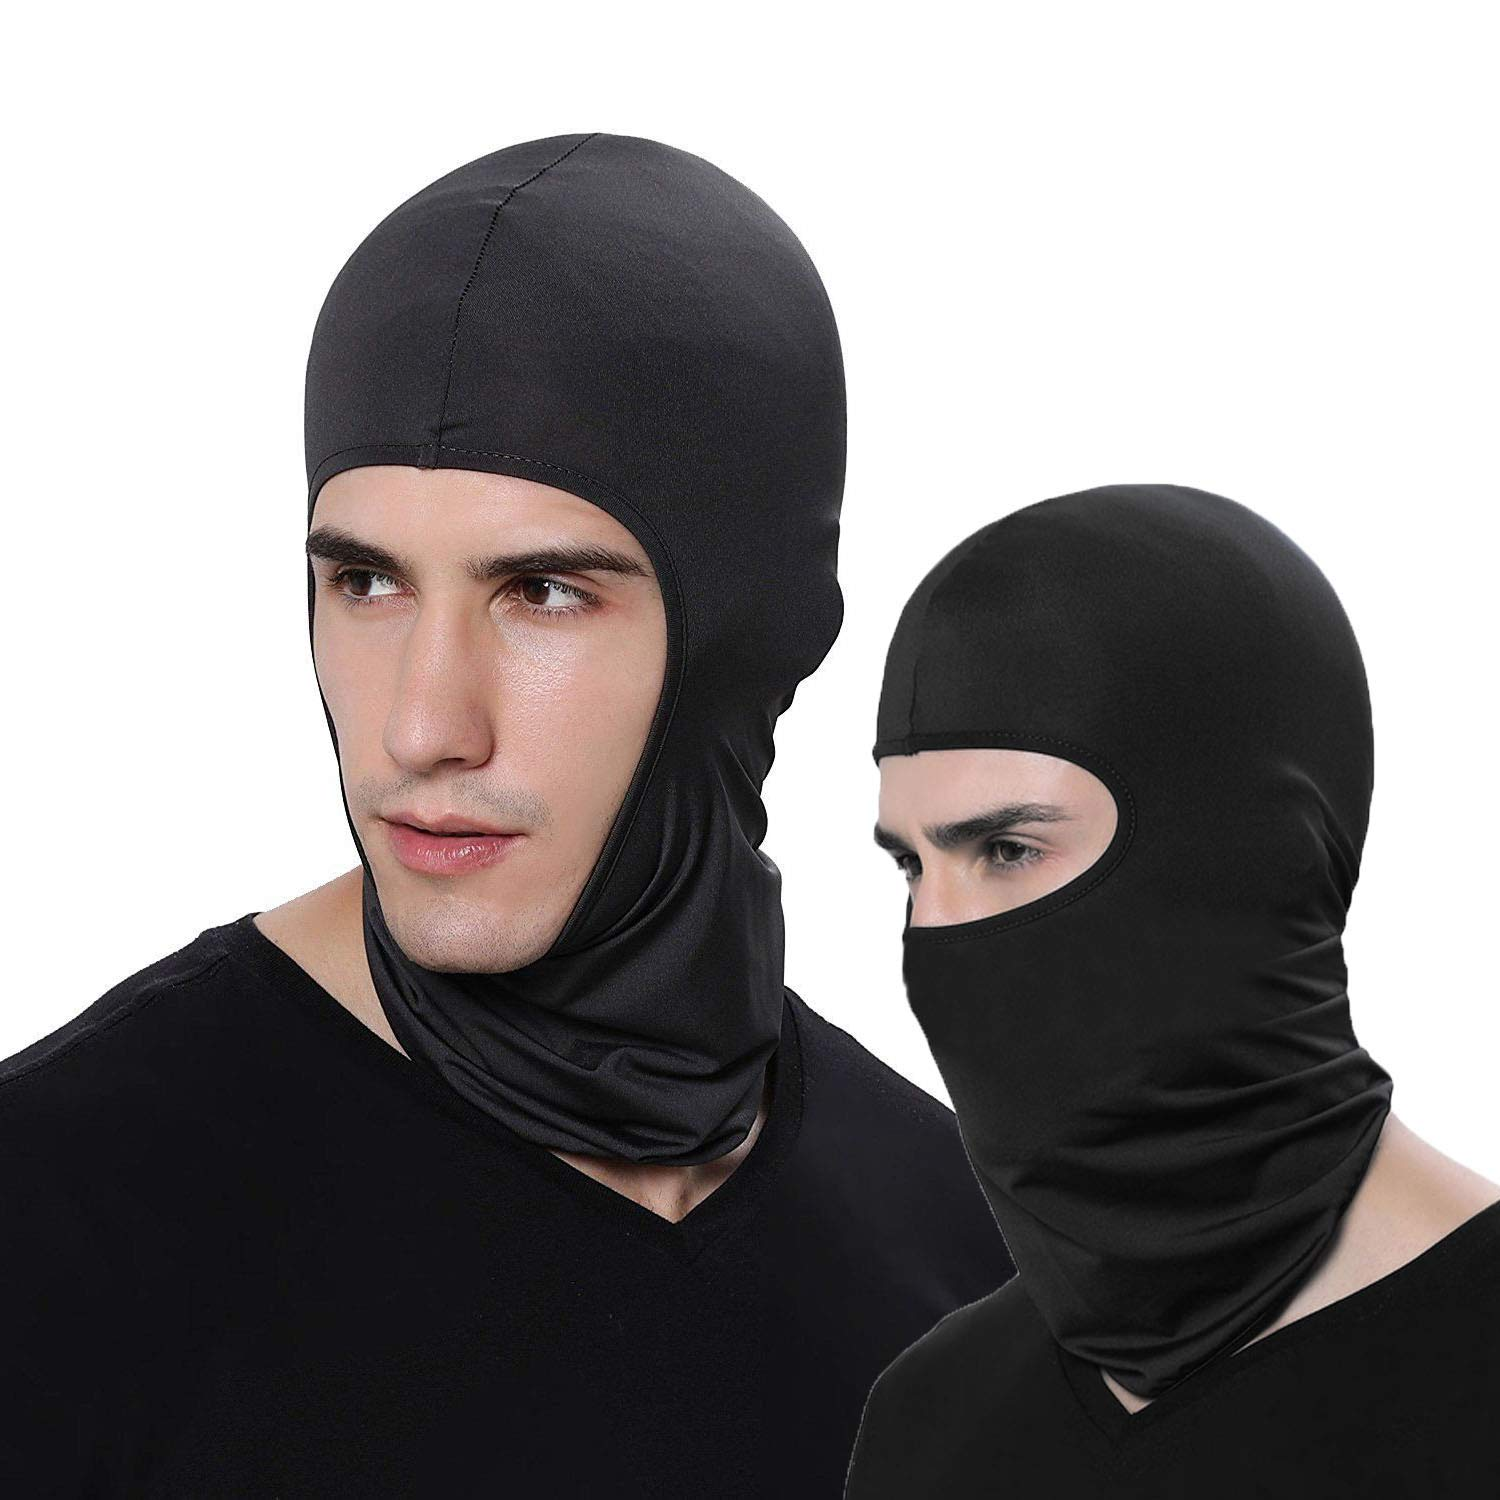 LEAGY 2Pack Candy Color Ultradünne Ski-Gesichtsmaske Ideal unter einem Fahrrad Warme Sturmhaube, Skimütze Sturmhaube Skullies Mützen (Schwarz)